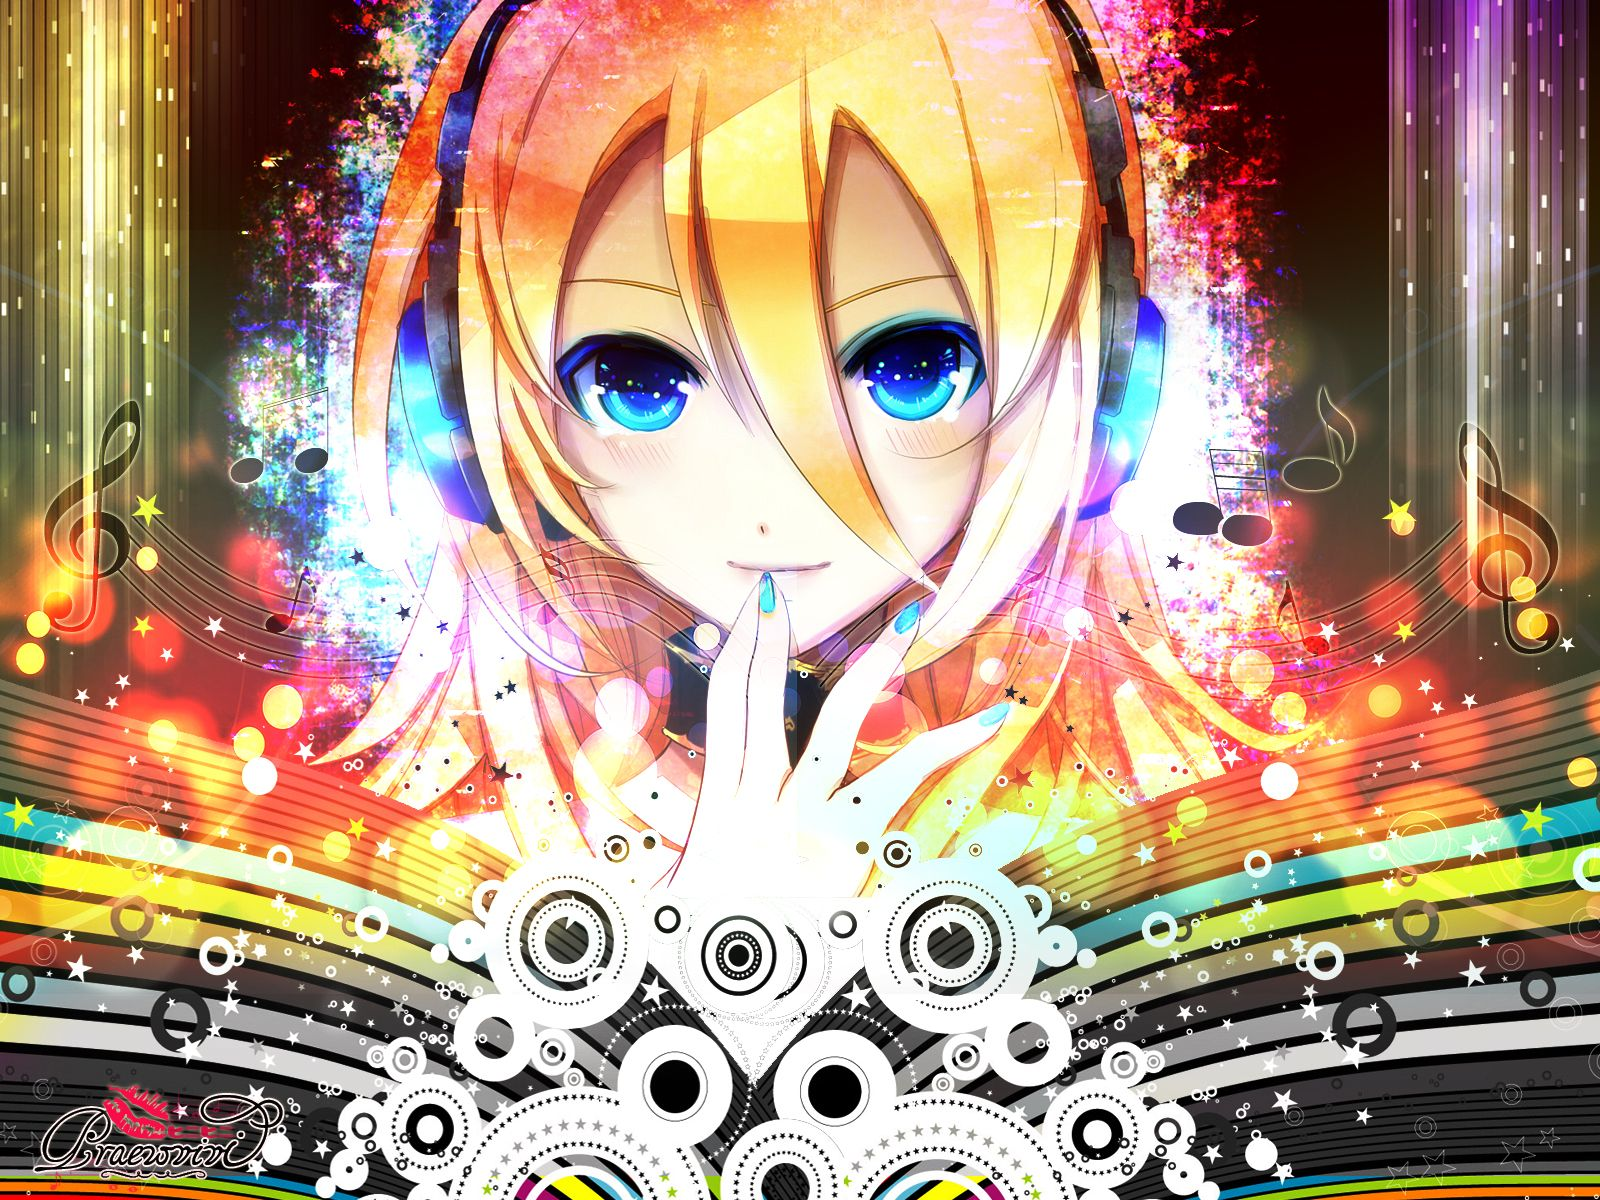 lily vocaloid wallpaper - photo #20